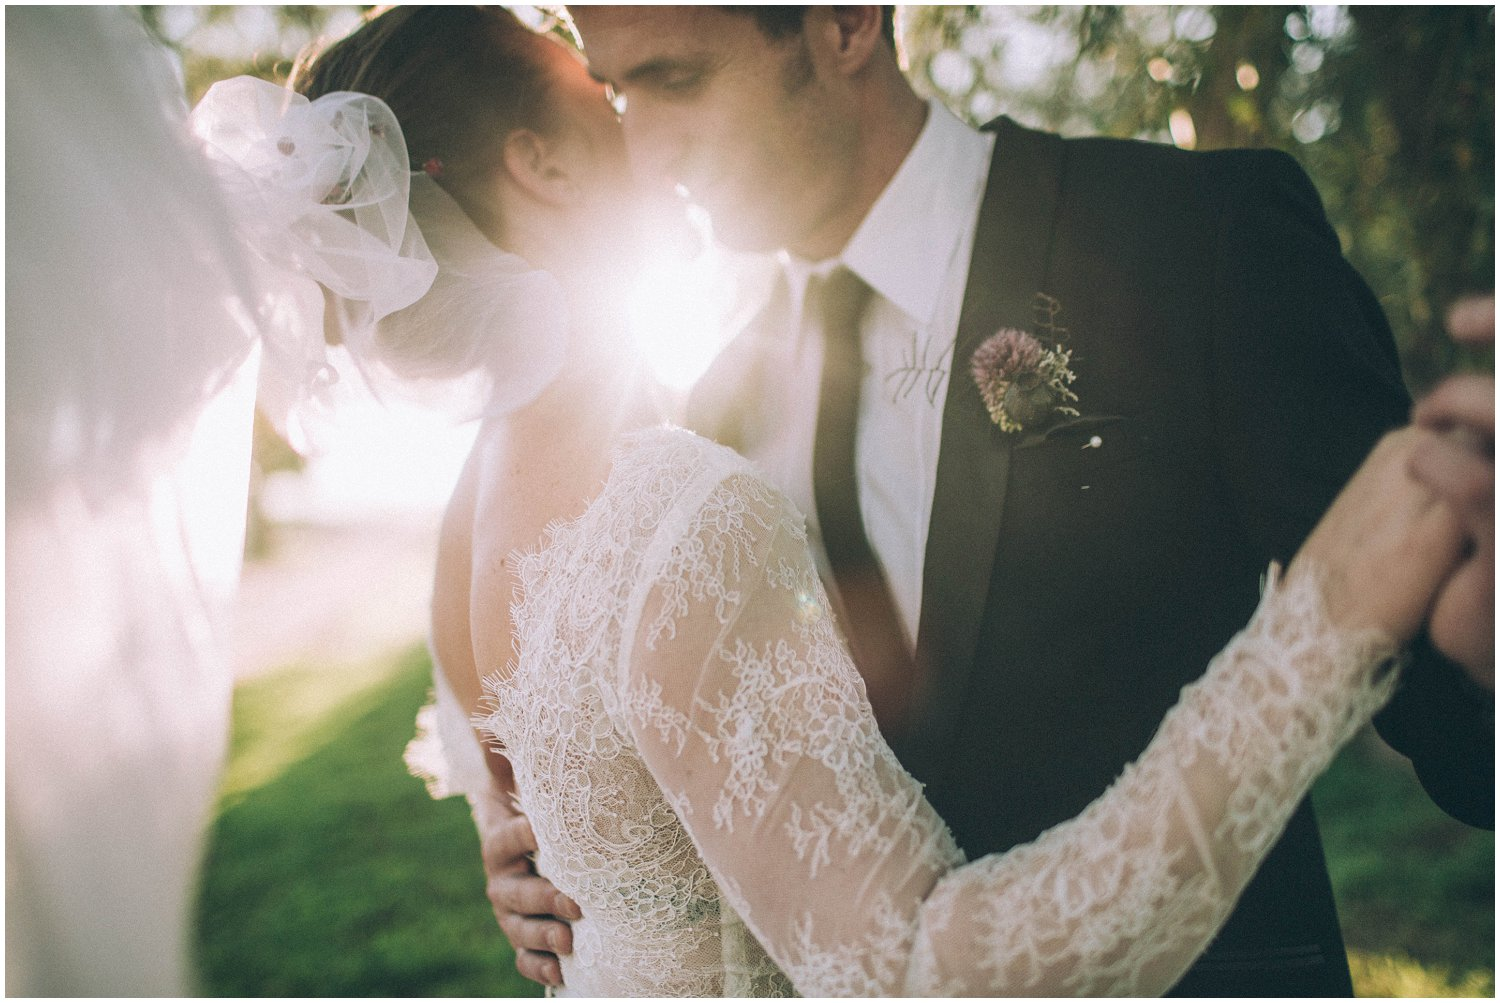 Top Wedding Photographer Cape Town South Africa Artistic Creative Documentary Wedding Photography Rue Kruger_1222.jpg